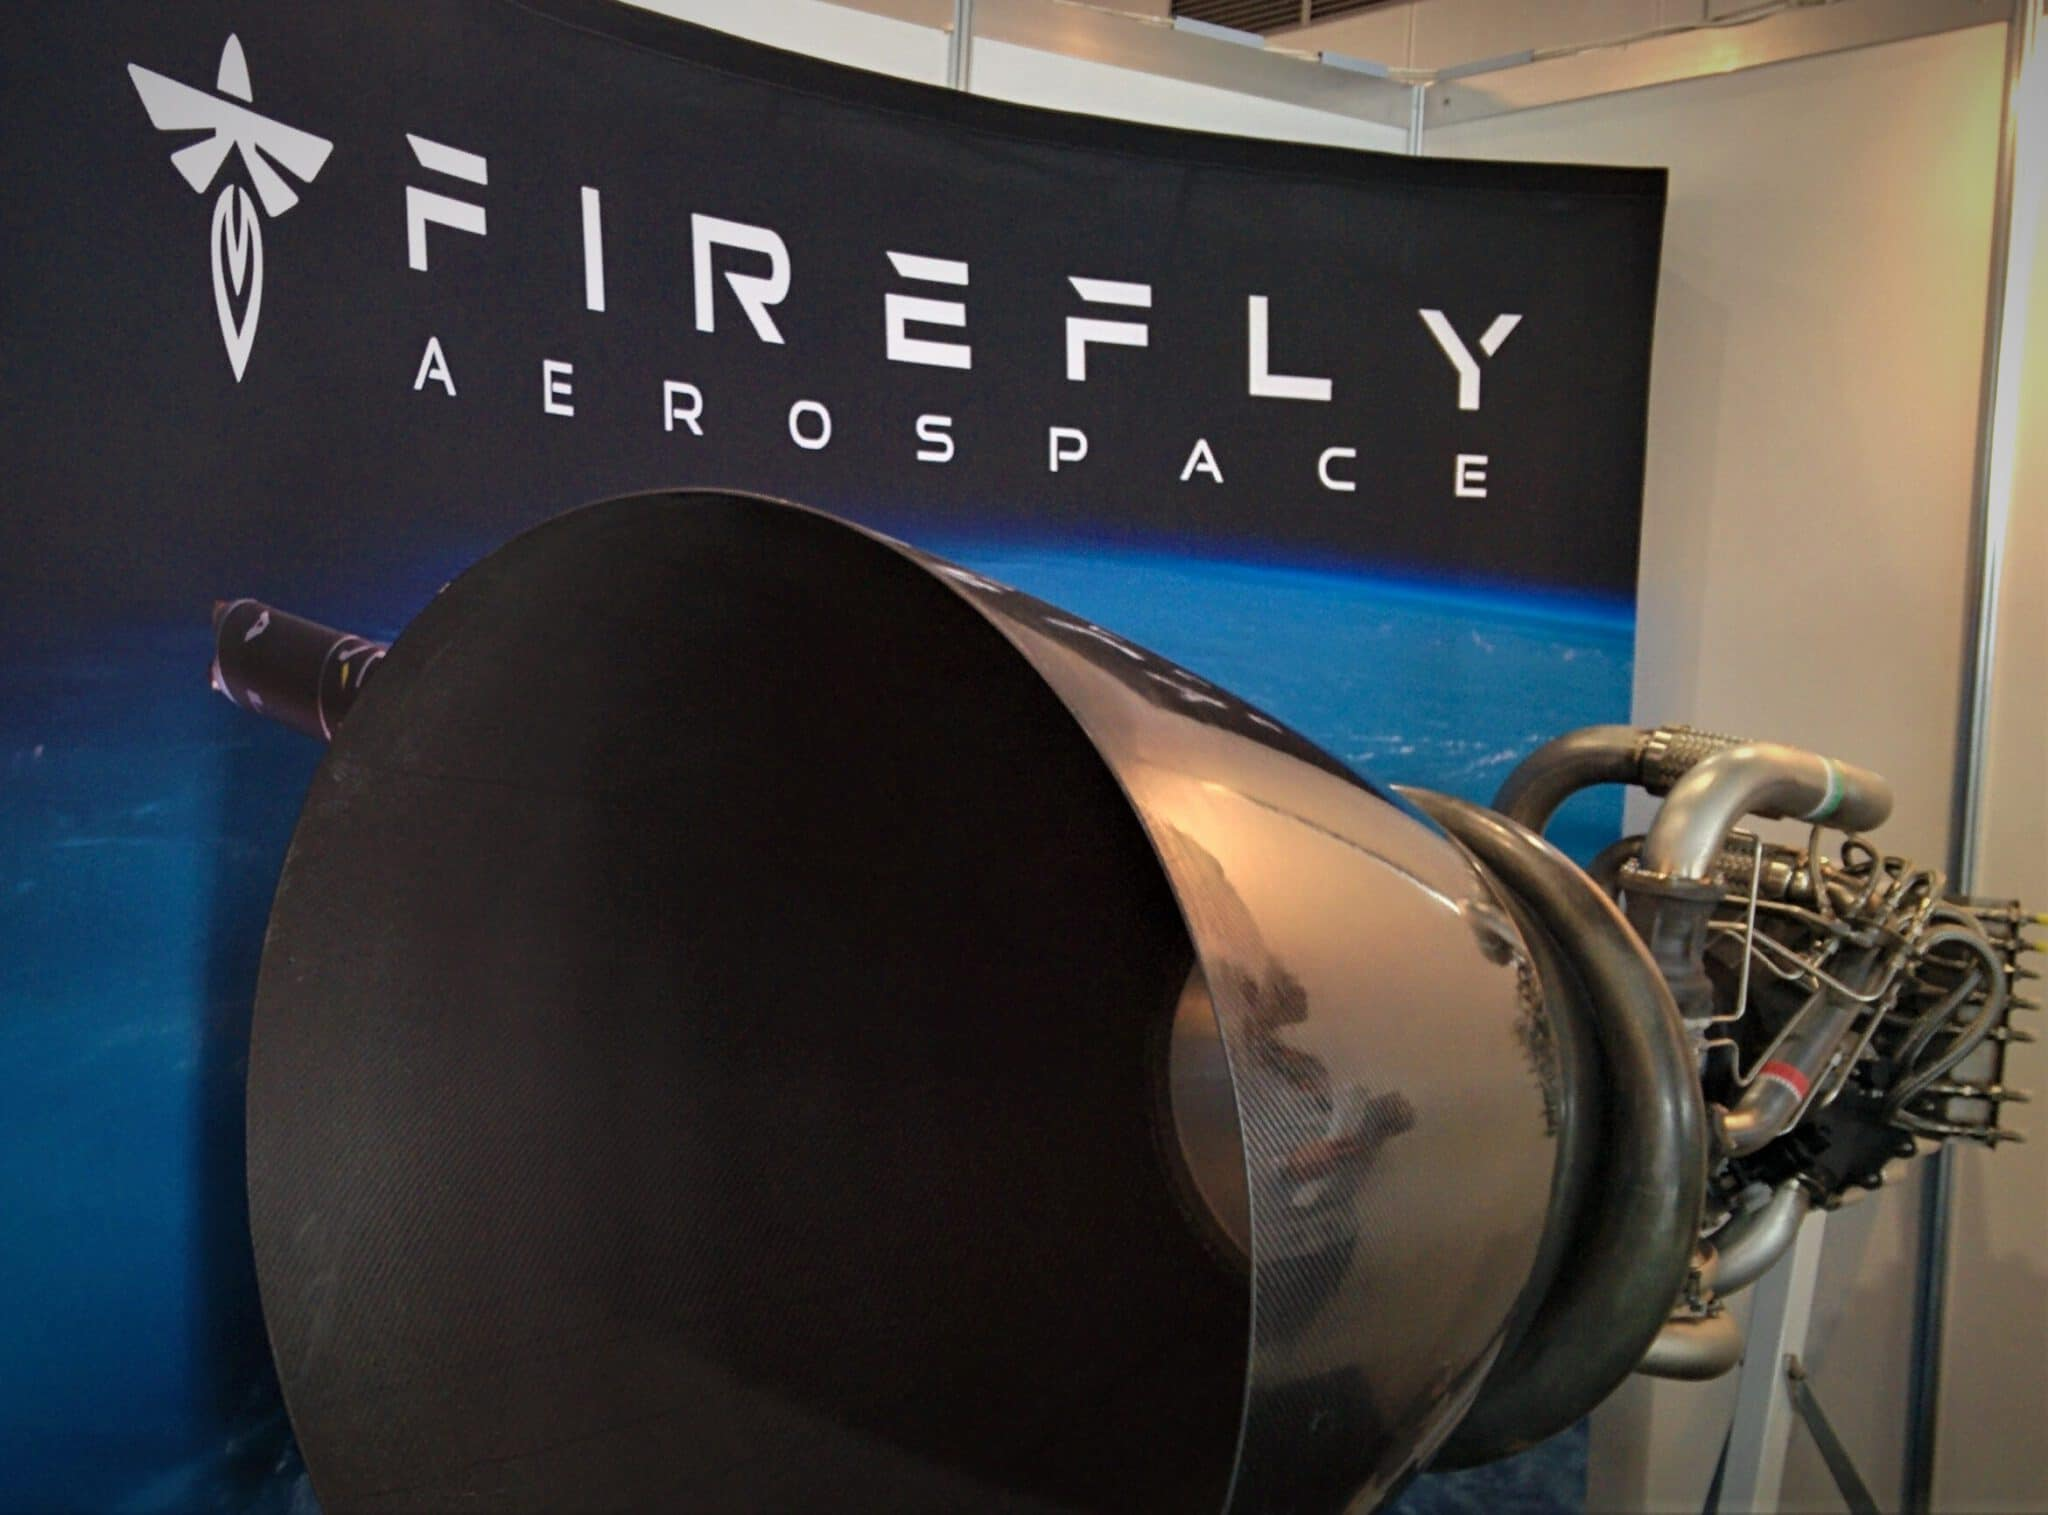 Info Shymkent - First stage engine of Firefly Alpha rocket